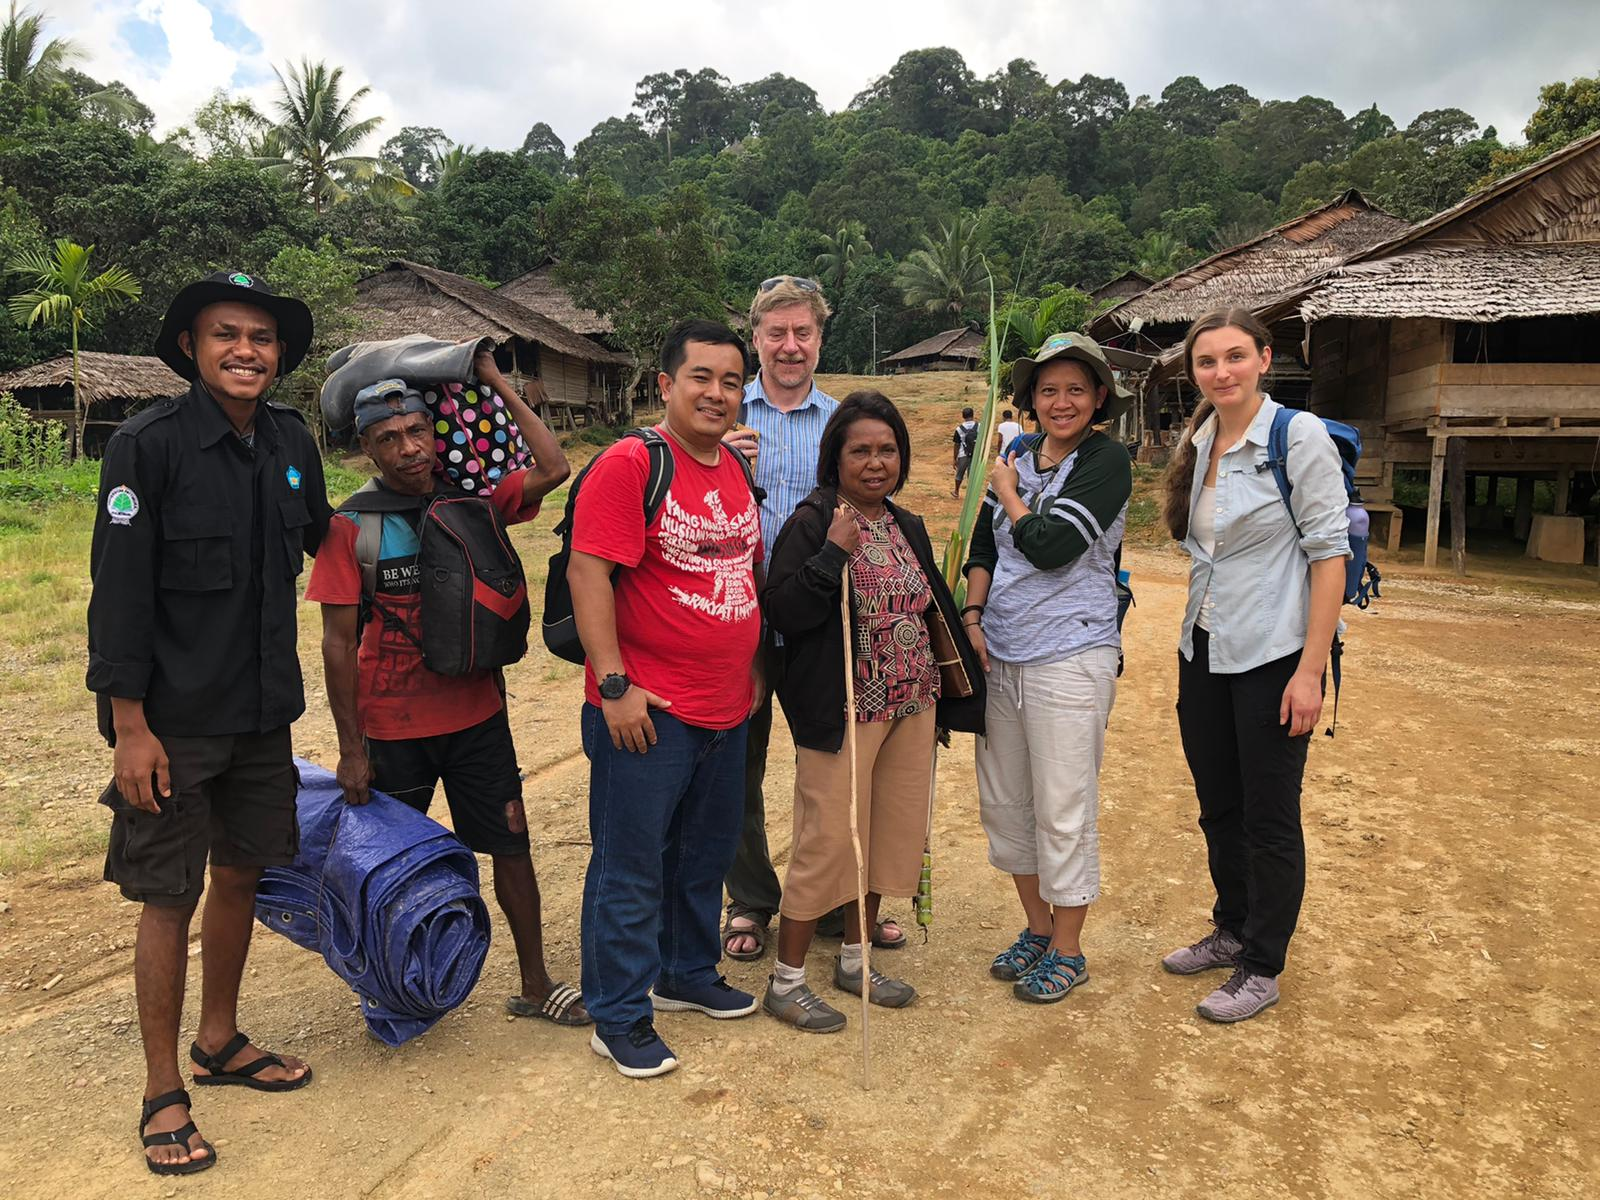 Boedhihartono and team in Huaulu village, Maluku, Indonesia